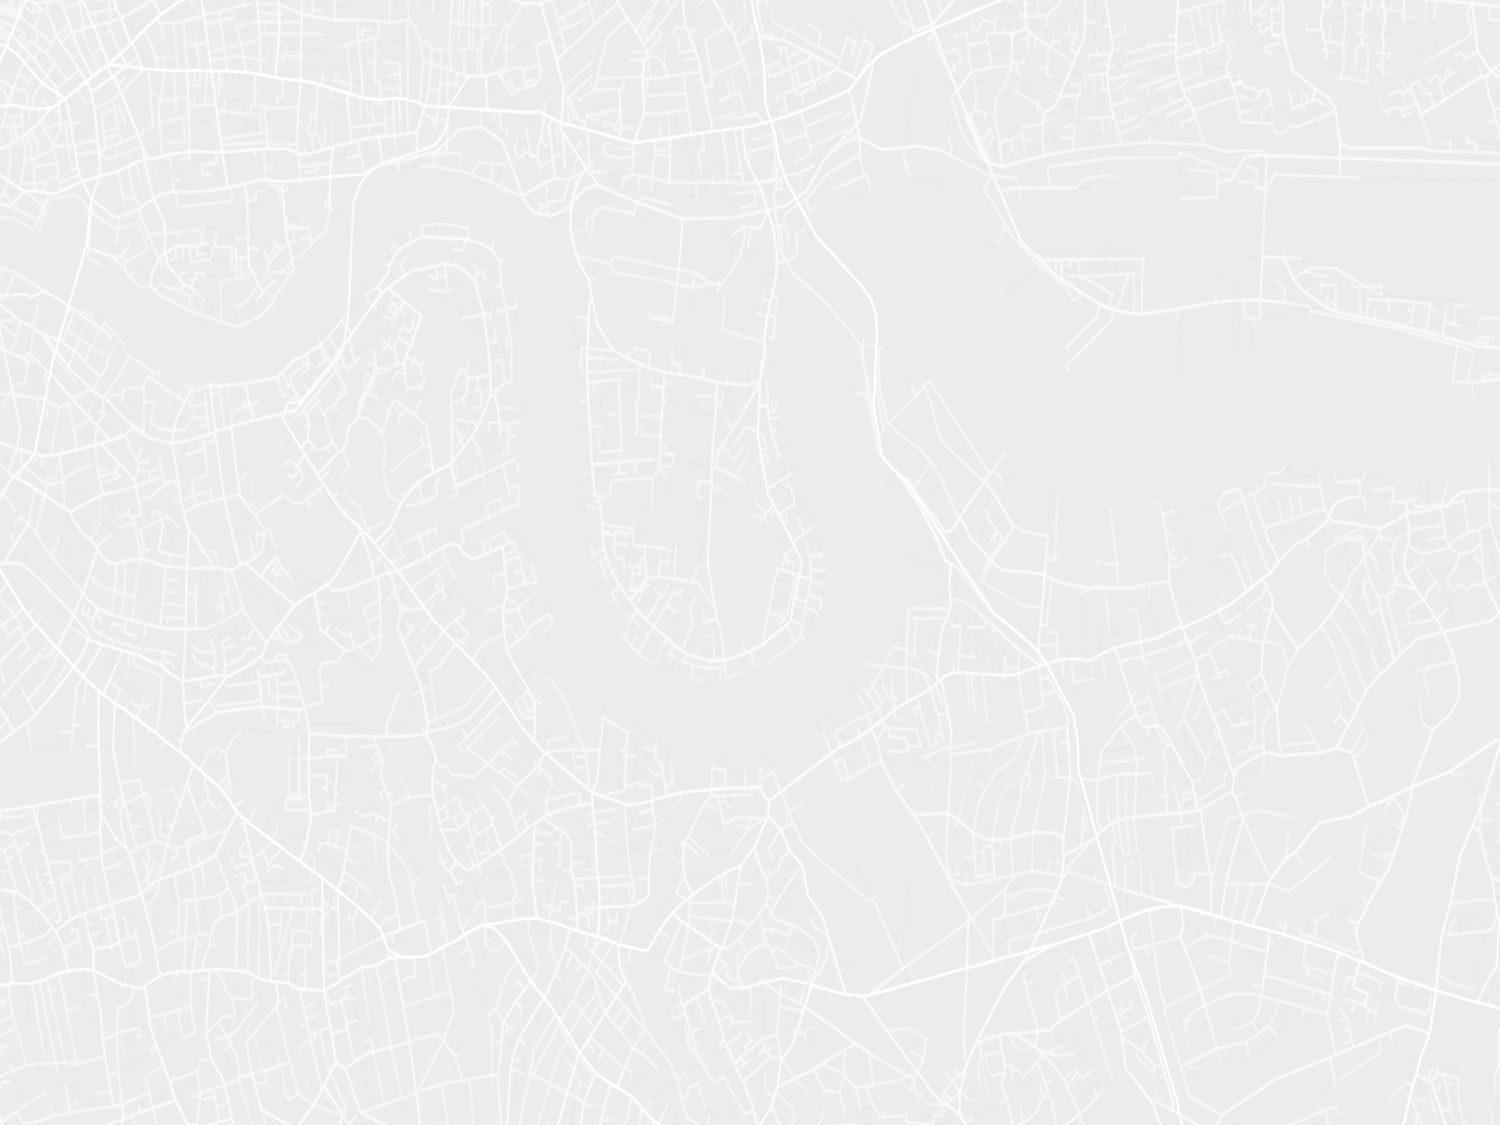 An abstract space syntax map of London